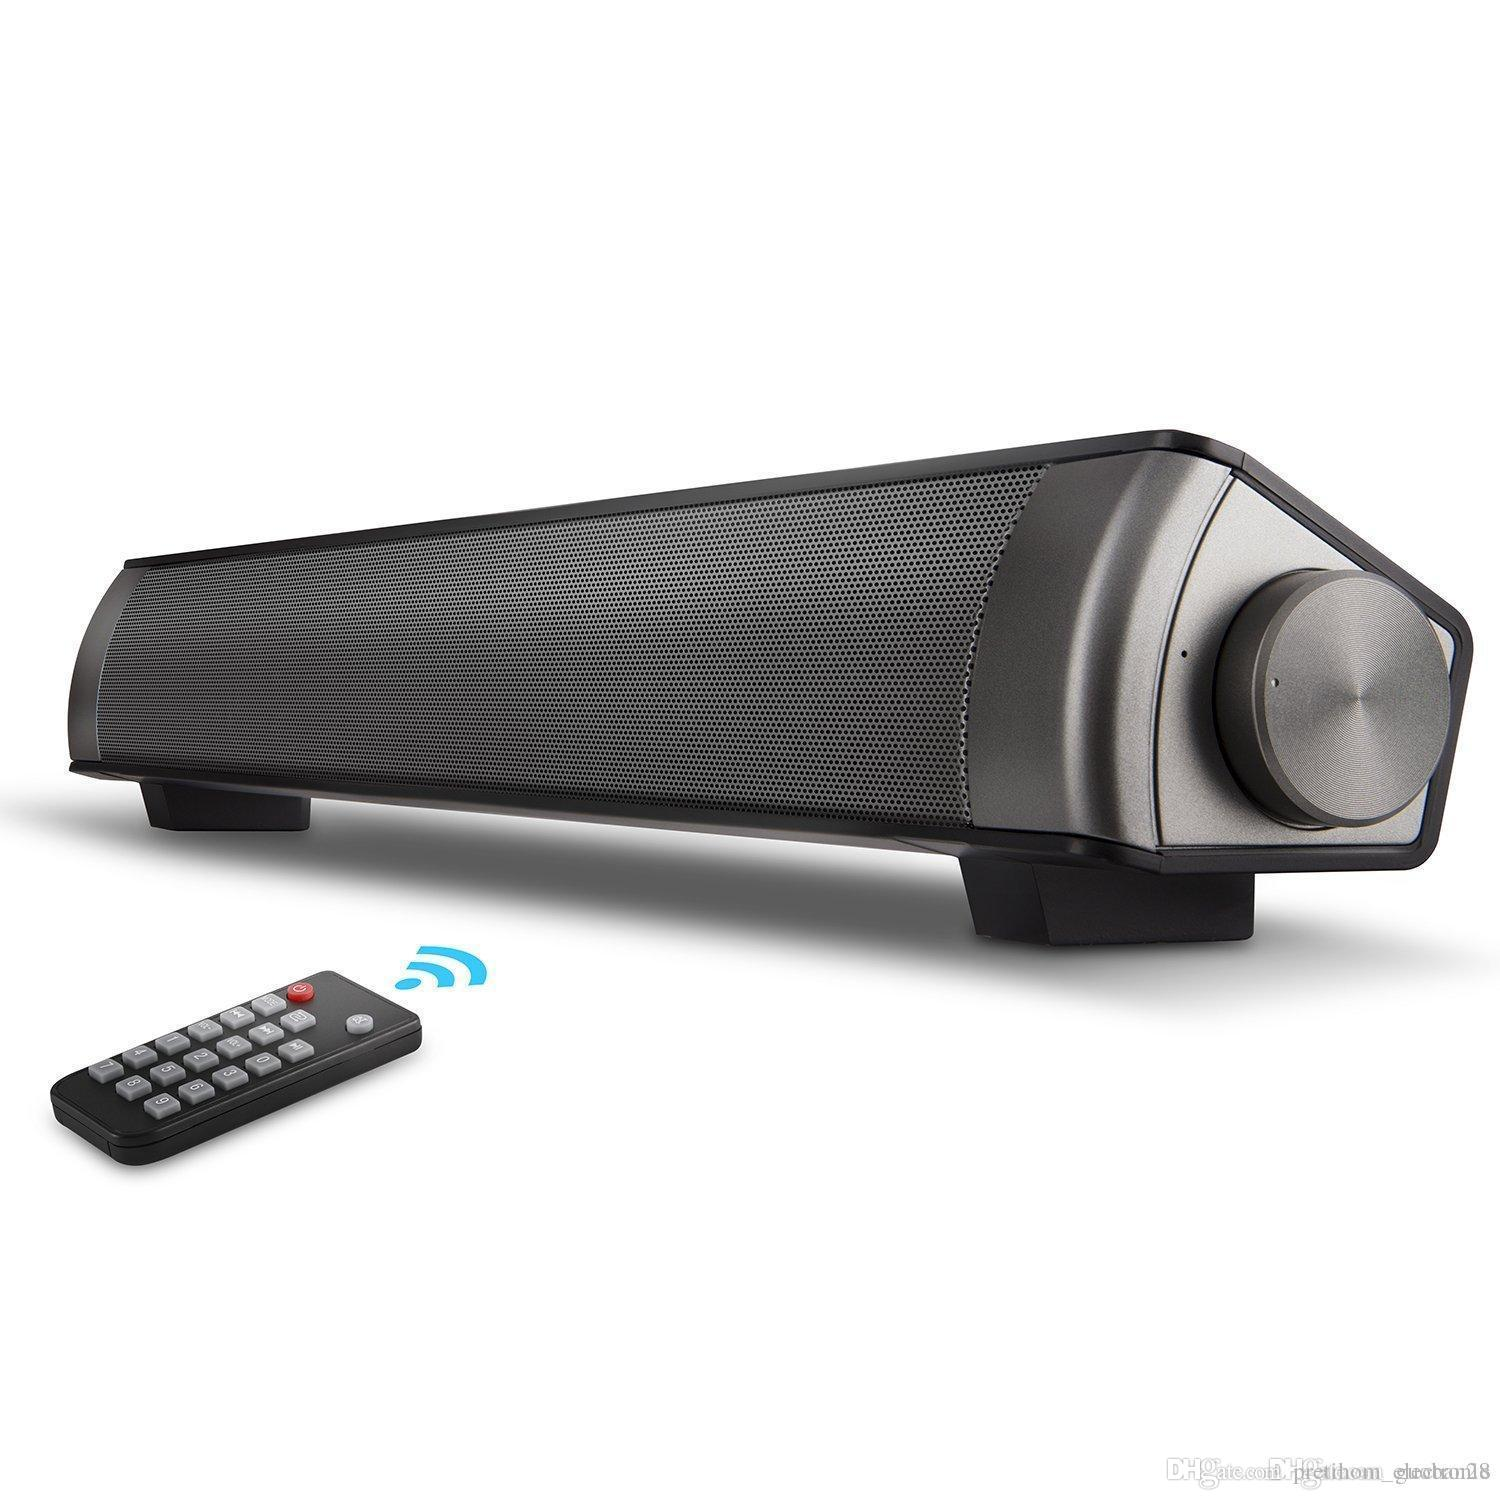 Soundbar Surround Sound Bar Home Theater System With Wired, TF Card,  Bluetooth Speaker - Wireless Sound Bar For TV, PC, Cellphone, Tablet